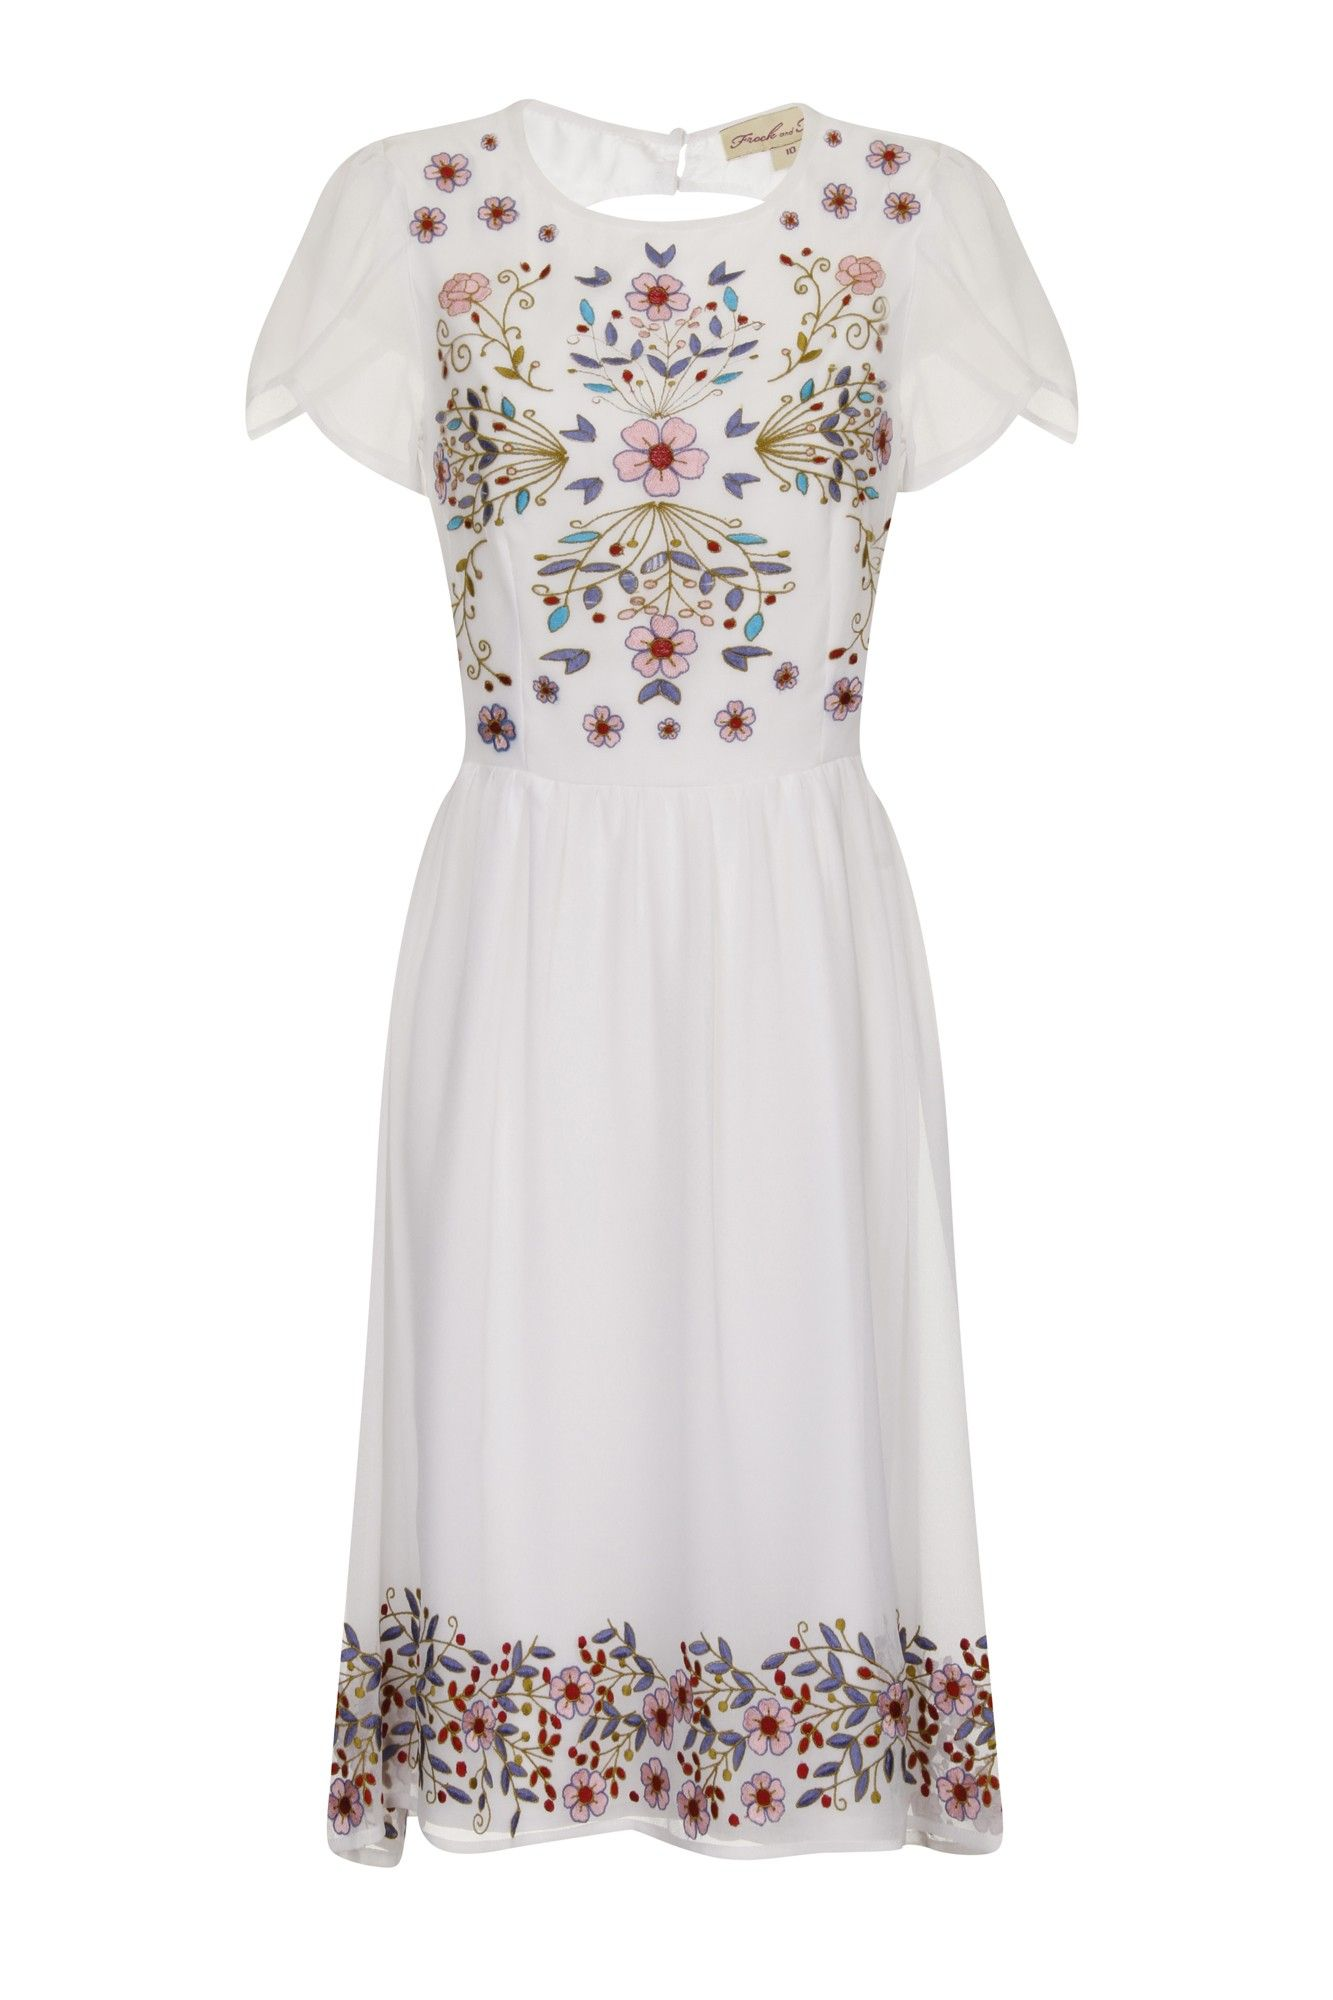 Rebecca Floral White Skater Dress